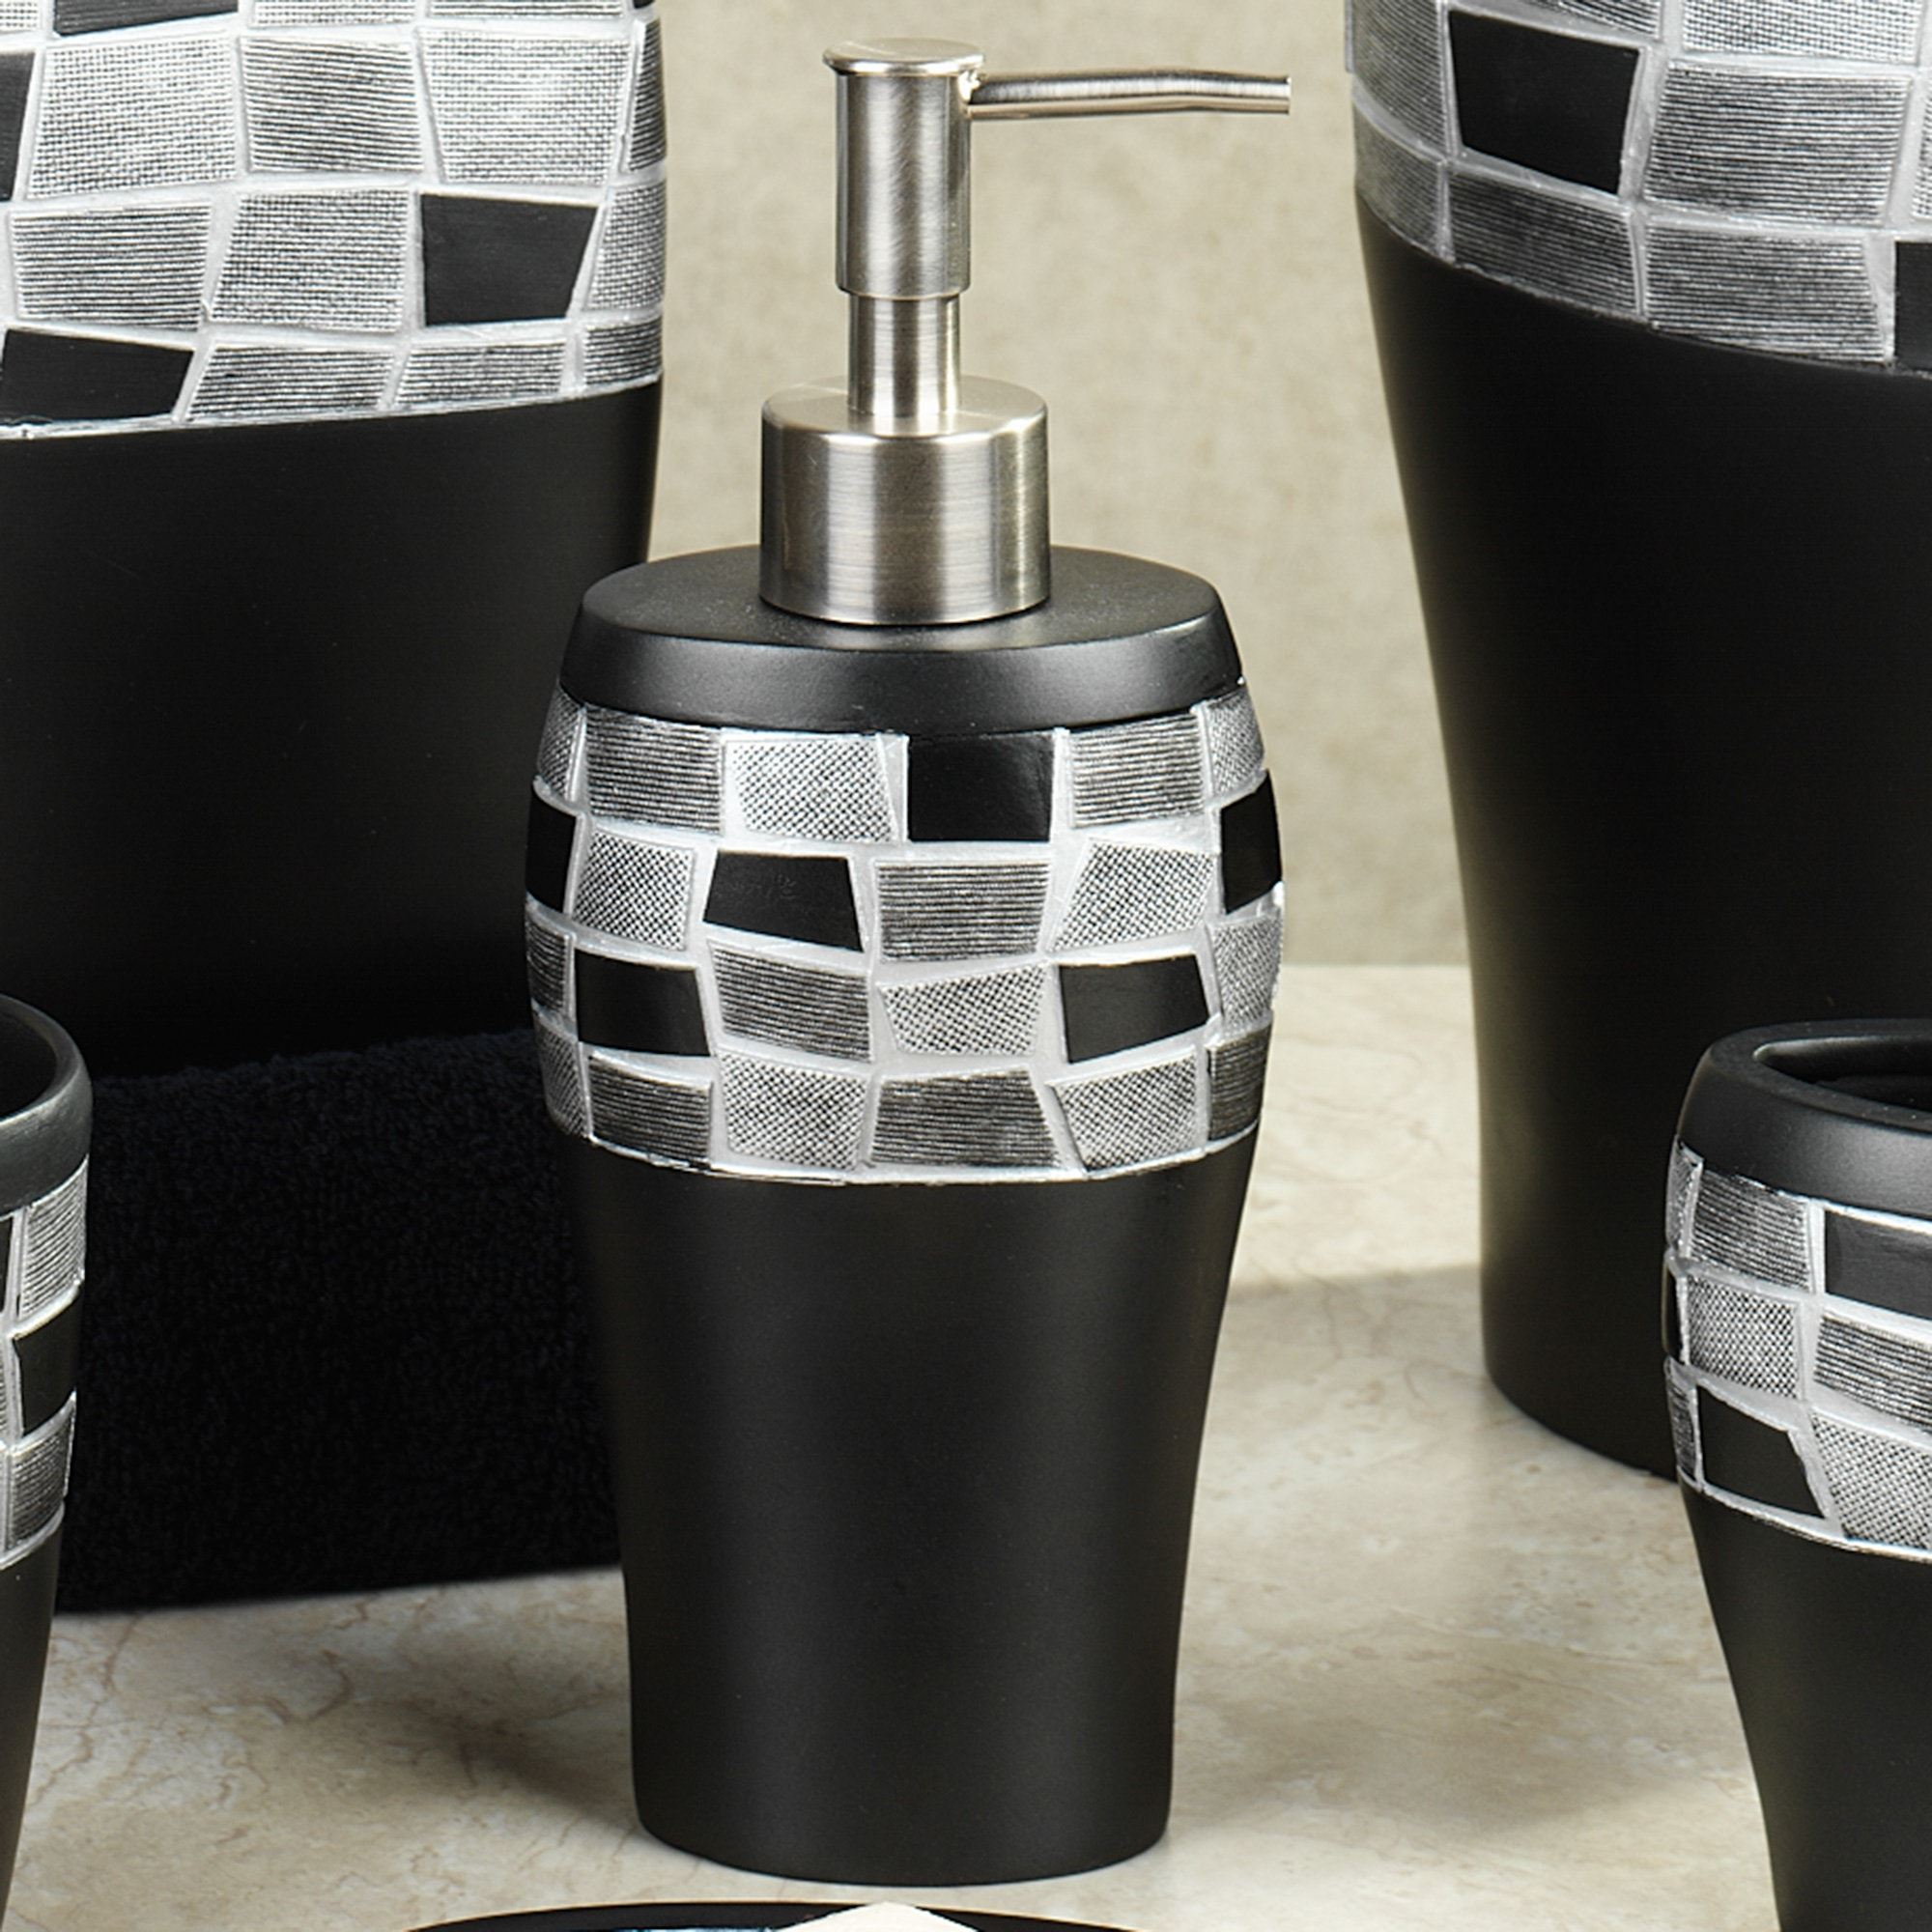 Black Mosaic Stone Lotion Soap Dispenser Resin Bath Accessories